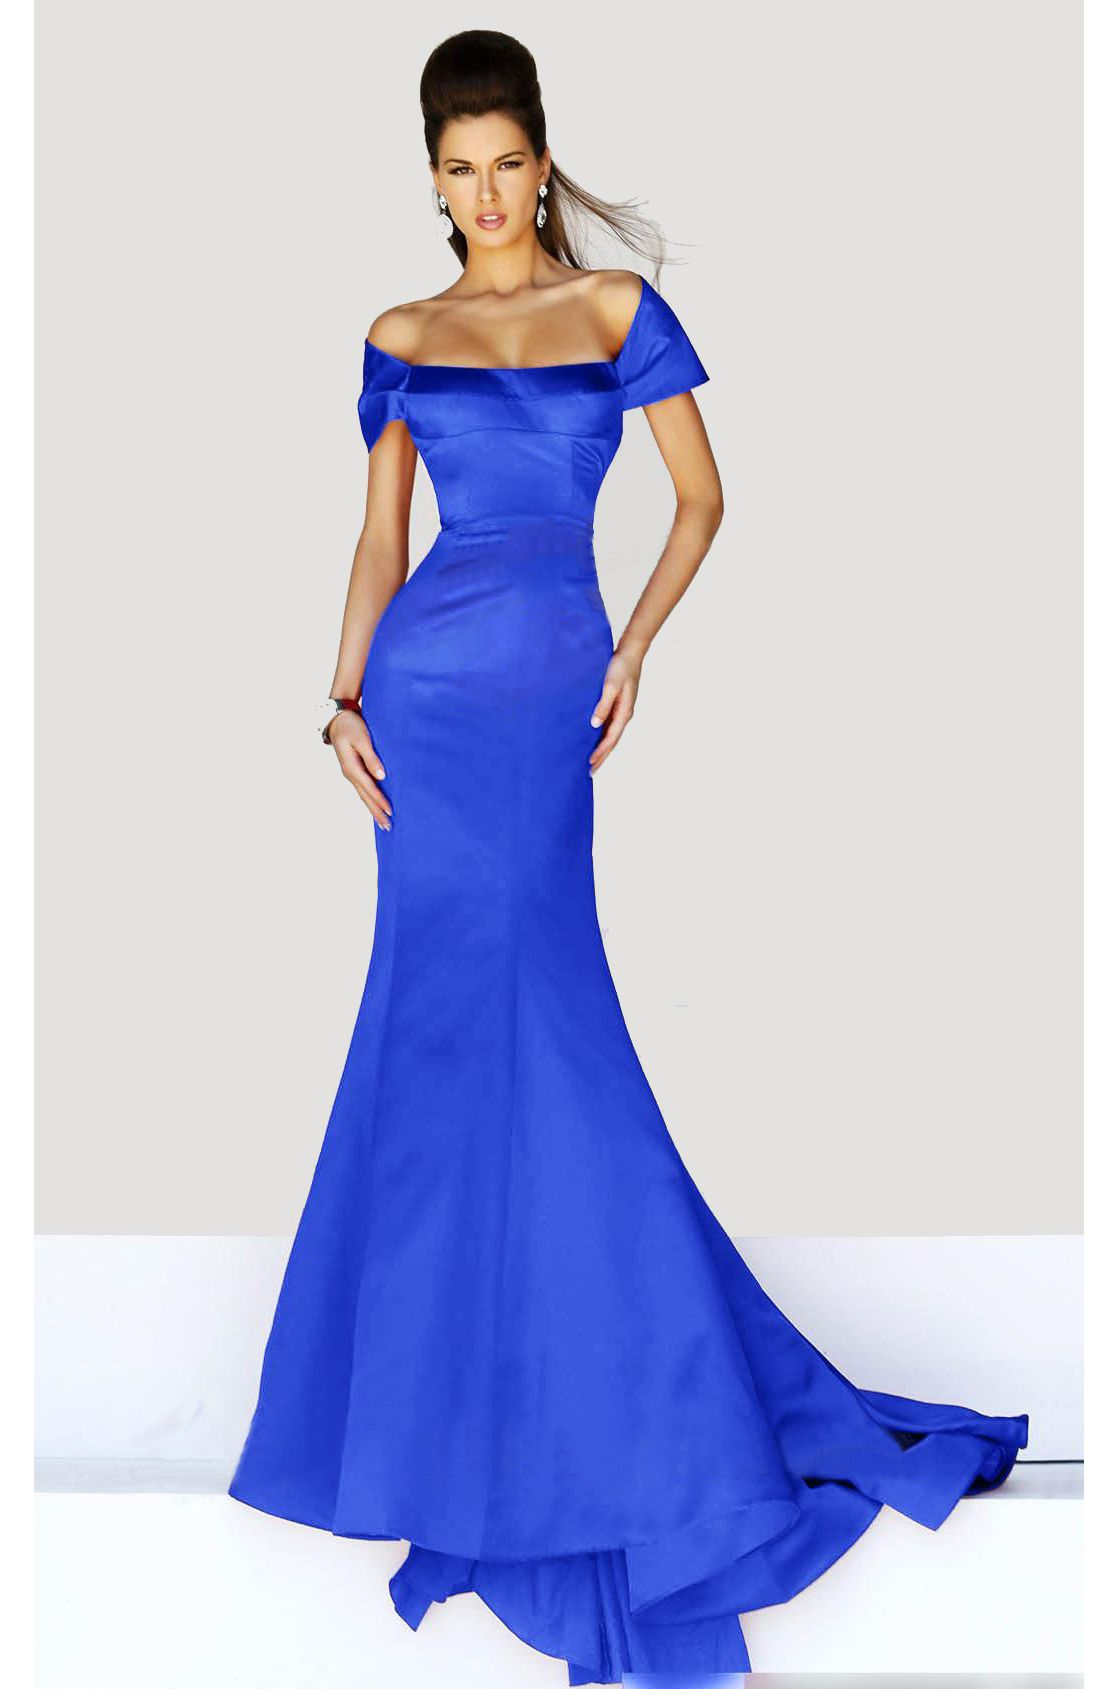 Superb hollywood glamour gown ndress rtw short evening